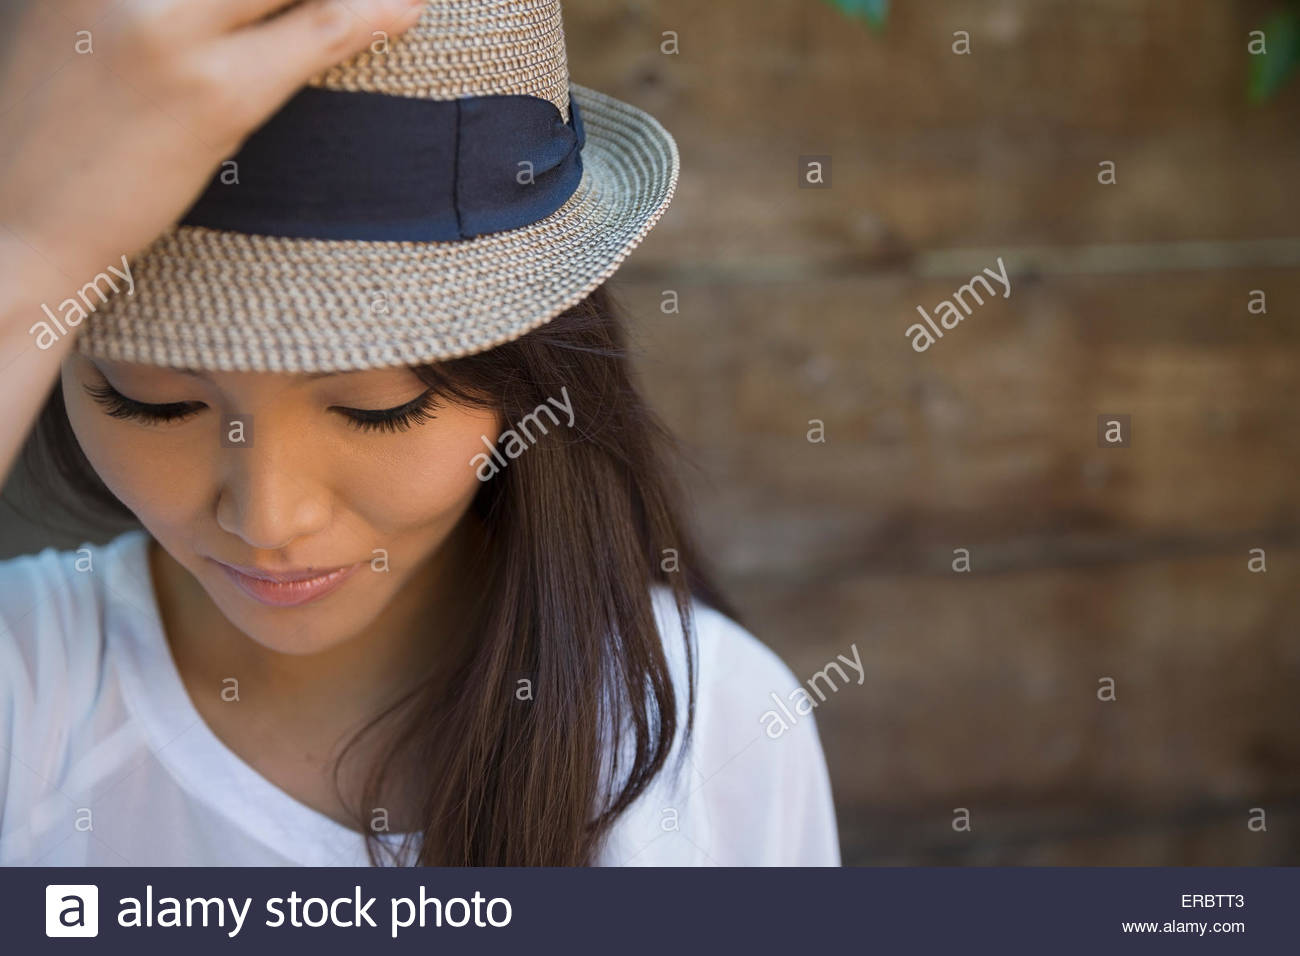 Grave Portrait woman in hat looking down Photo Stock